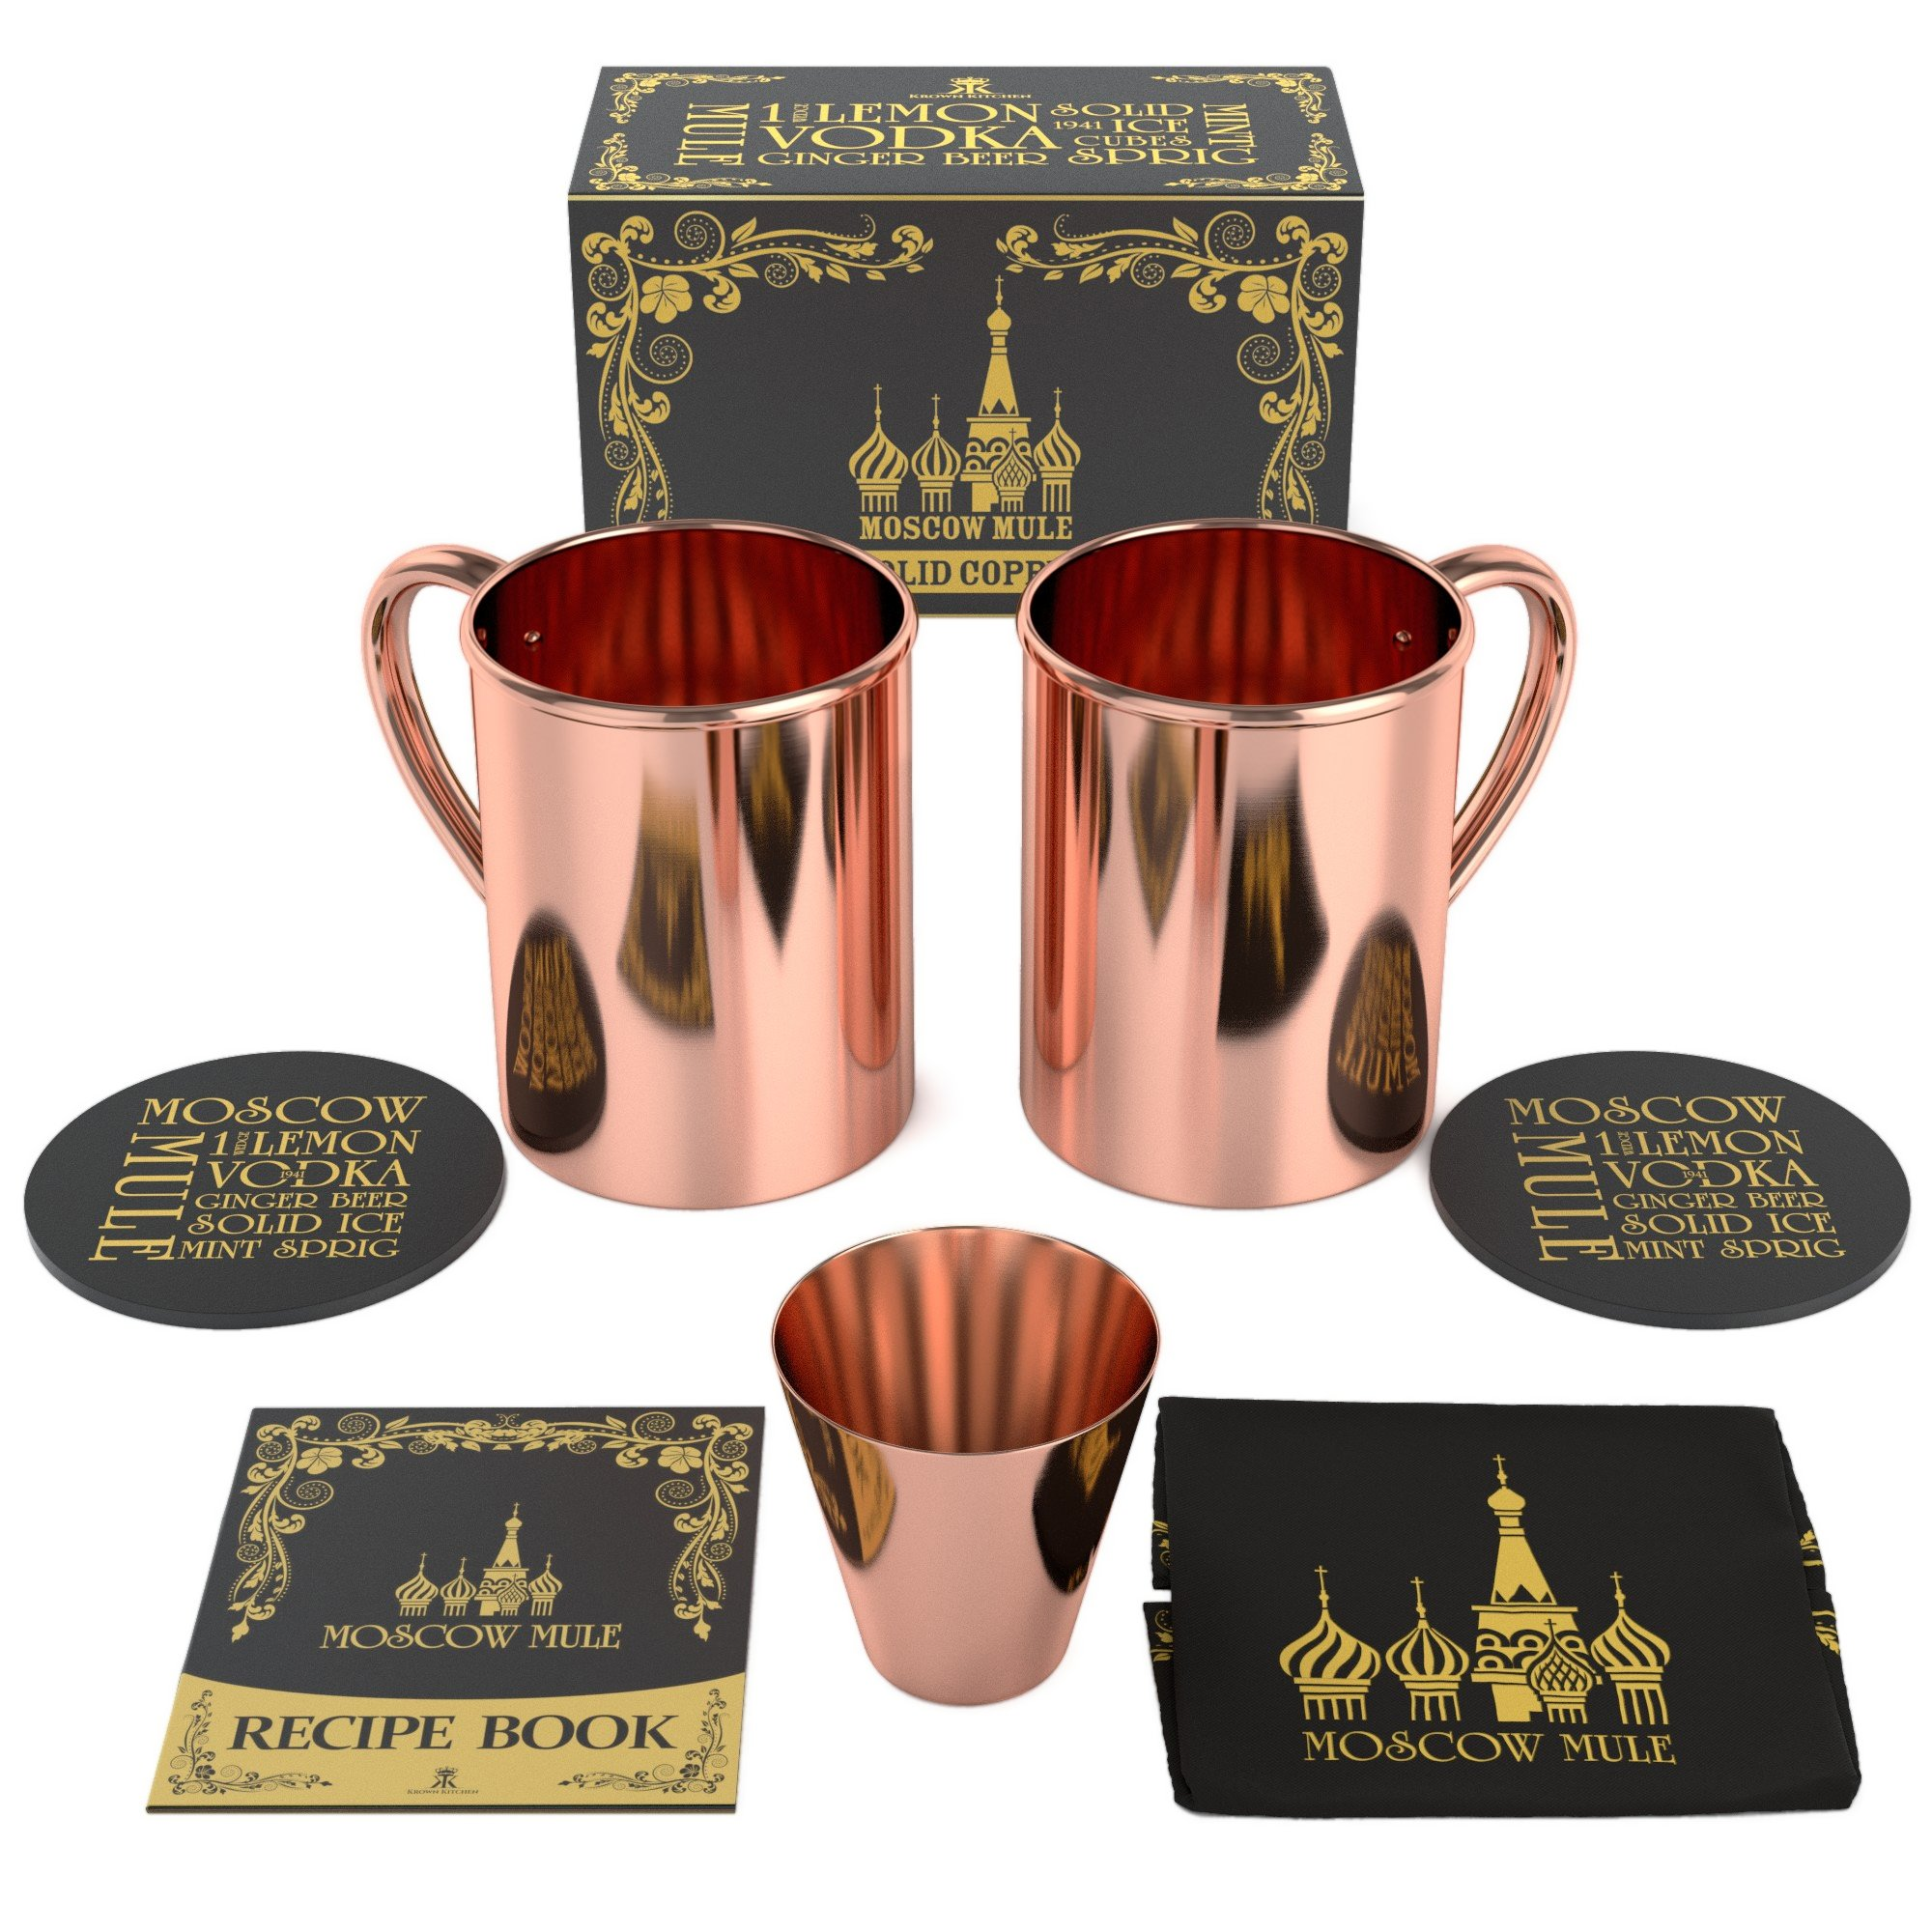 Krown Kitchen - 100% solid moscow mule copper mug (2) by Krown Kitchen (Image #4)